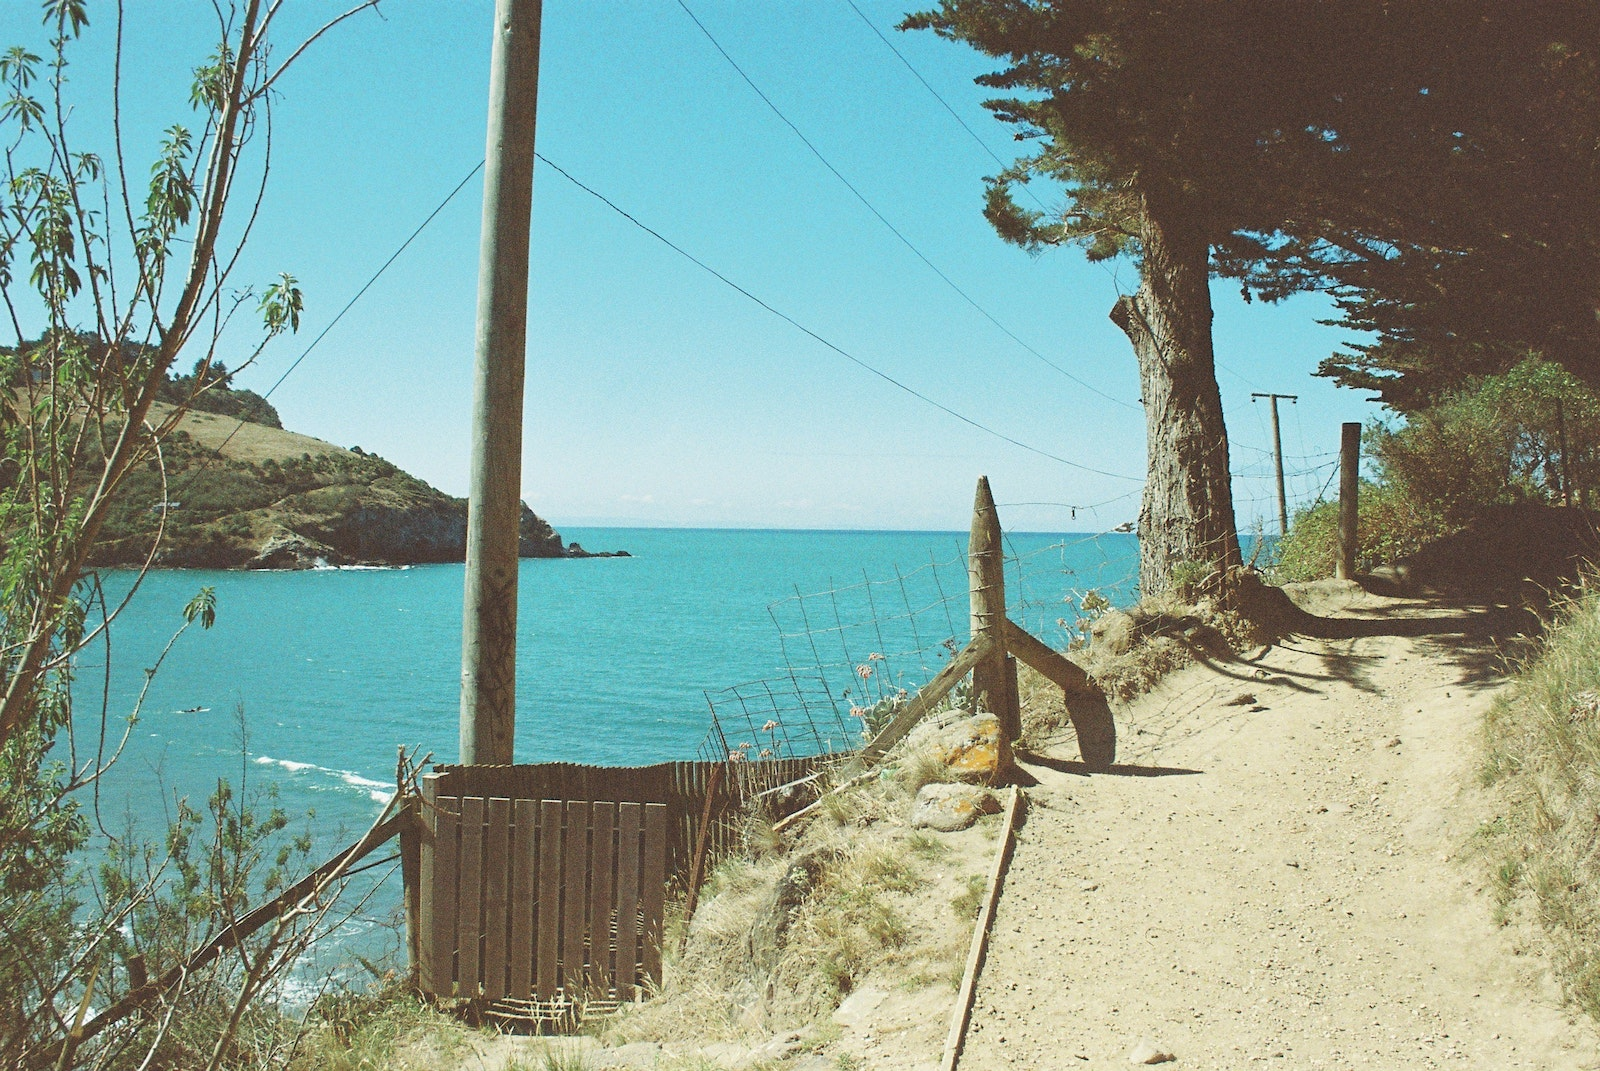 A path leading away to the right with ocean on the left